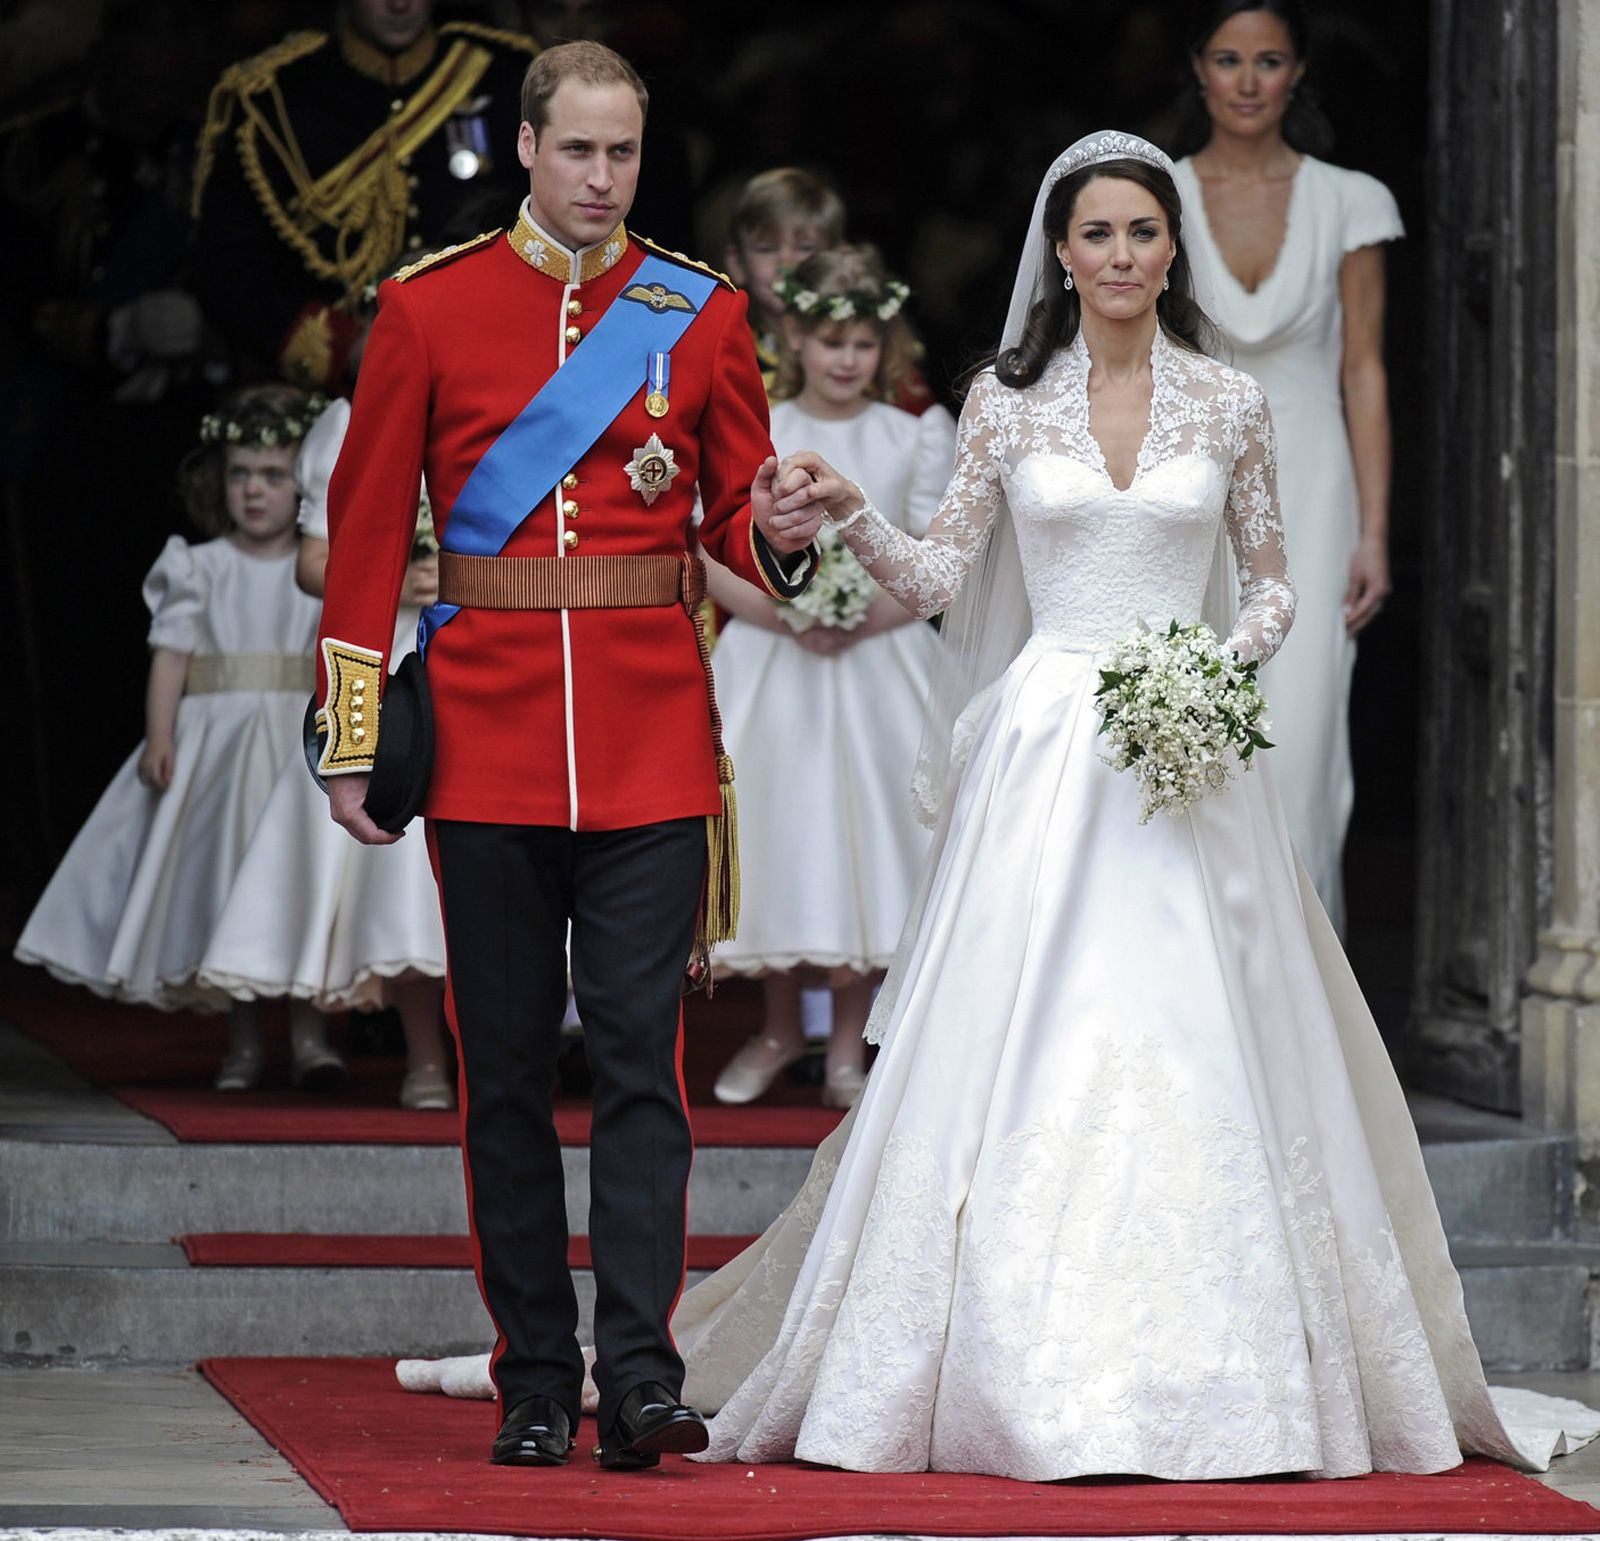 Pin By Save The Date Gr On The Day Kate Middleton Wedding Dress Kate Middleton Wedding Royal Wedding Dress